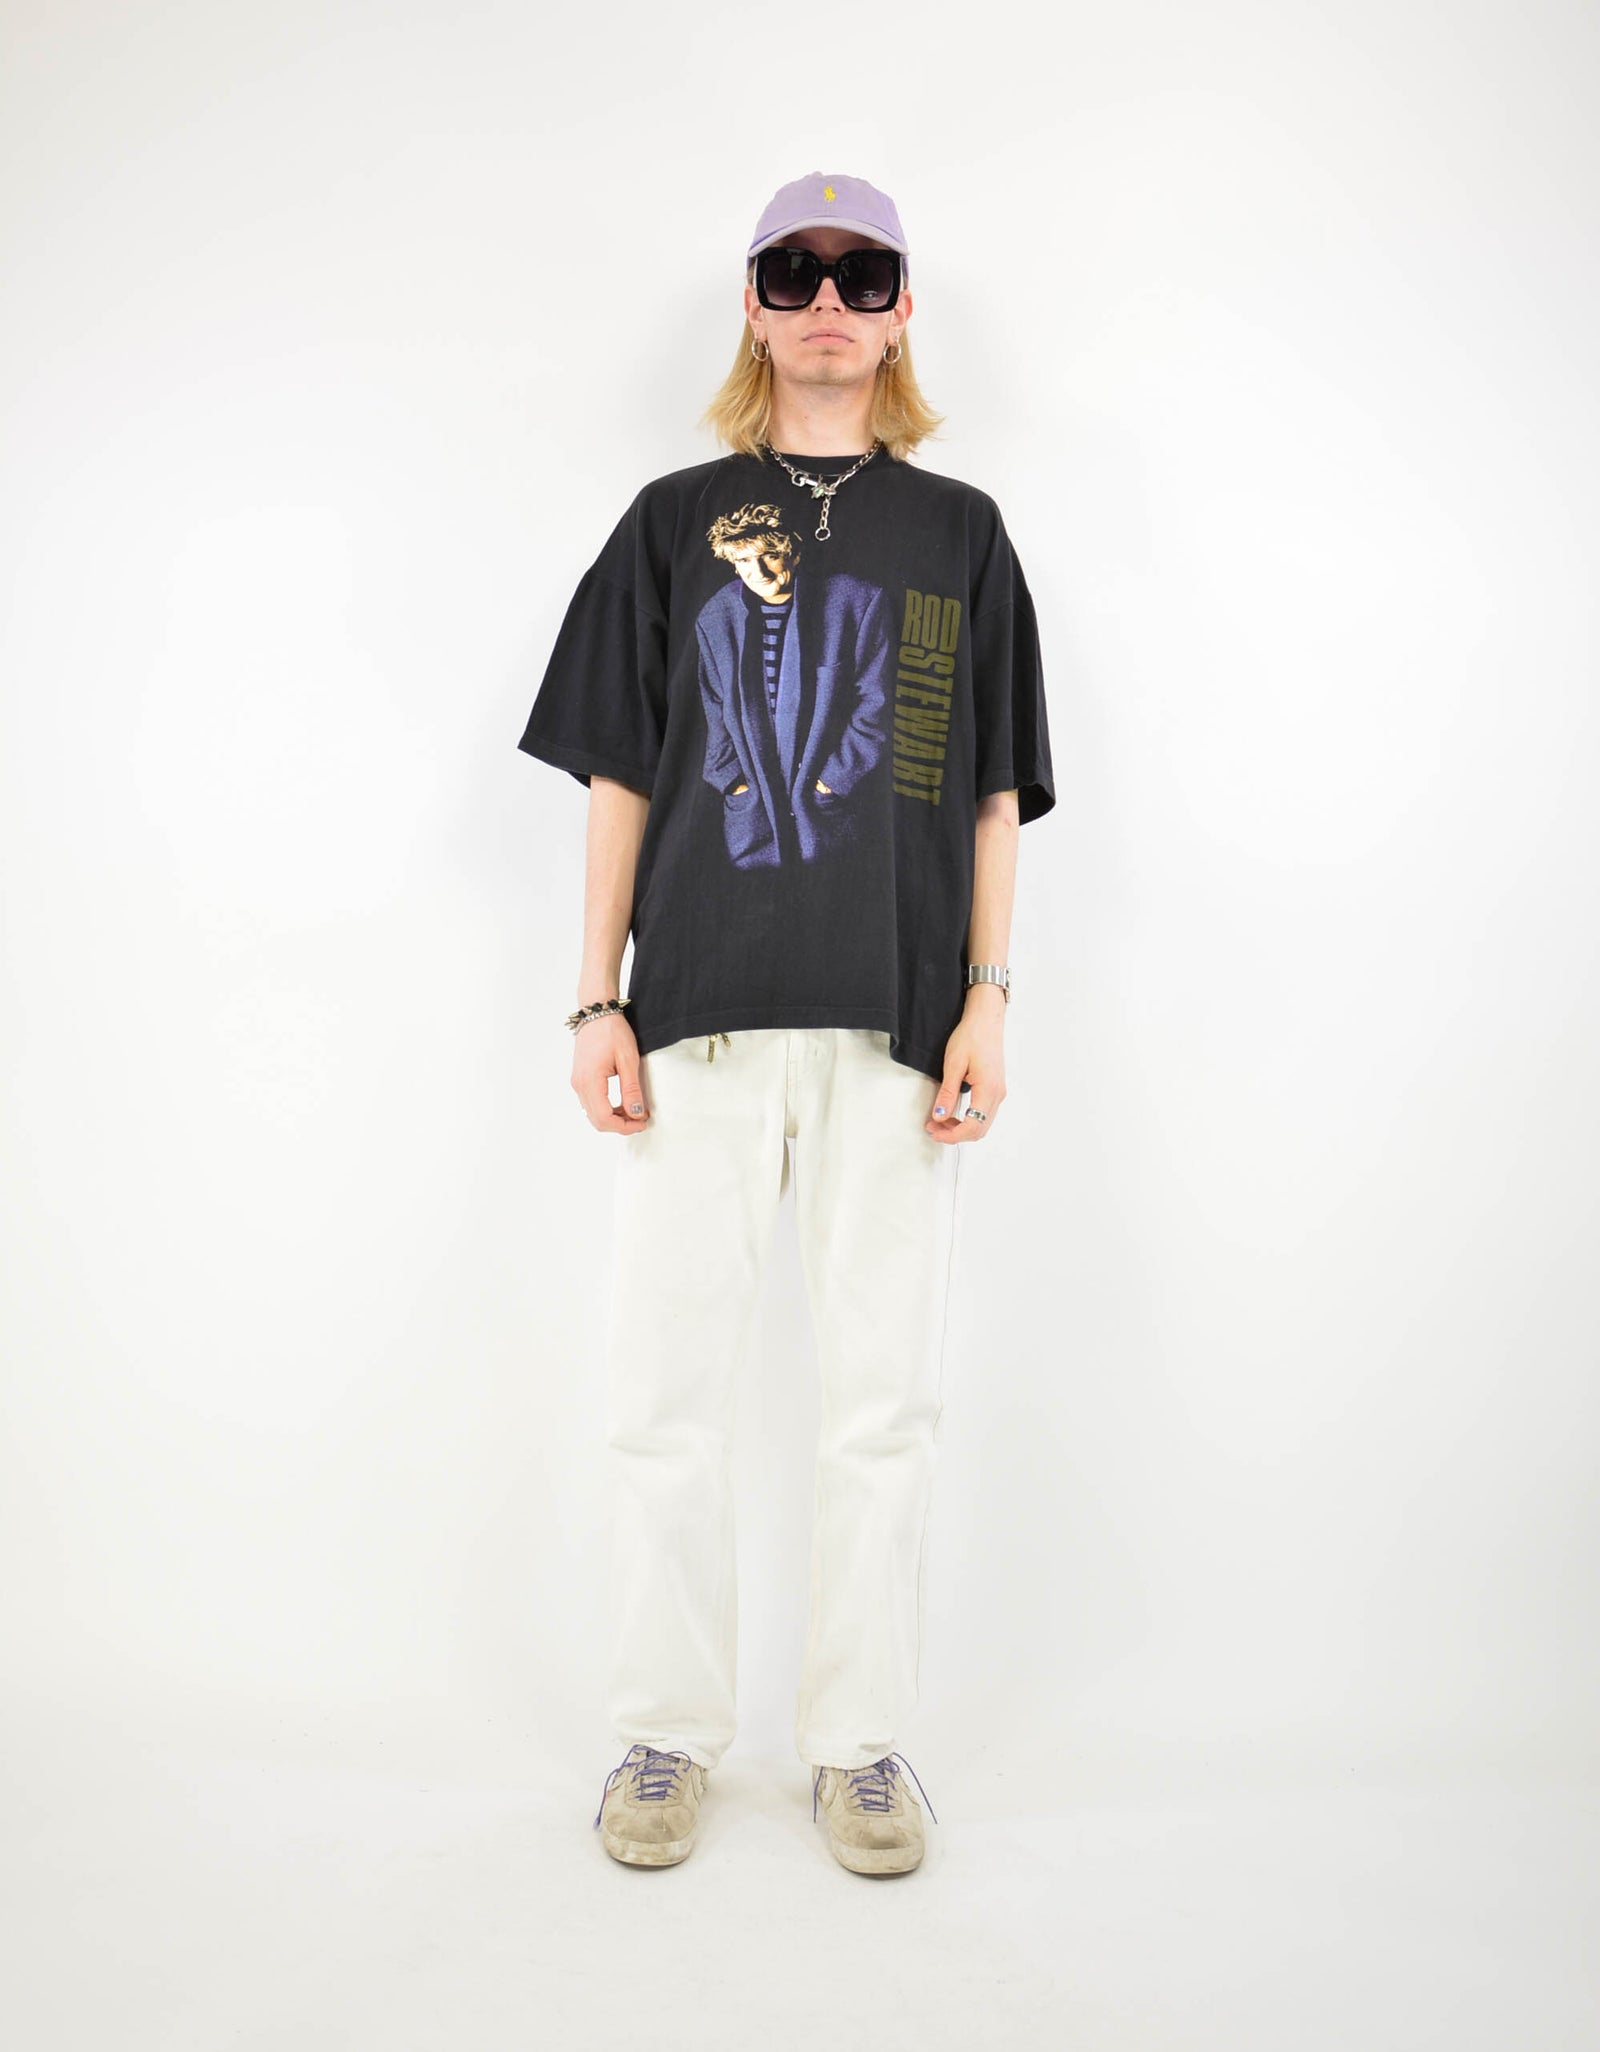 Band tee - PICKNWEIGHT - VINTAGE KILO STORE